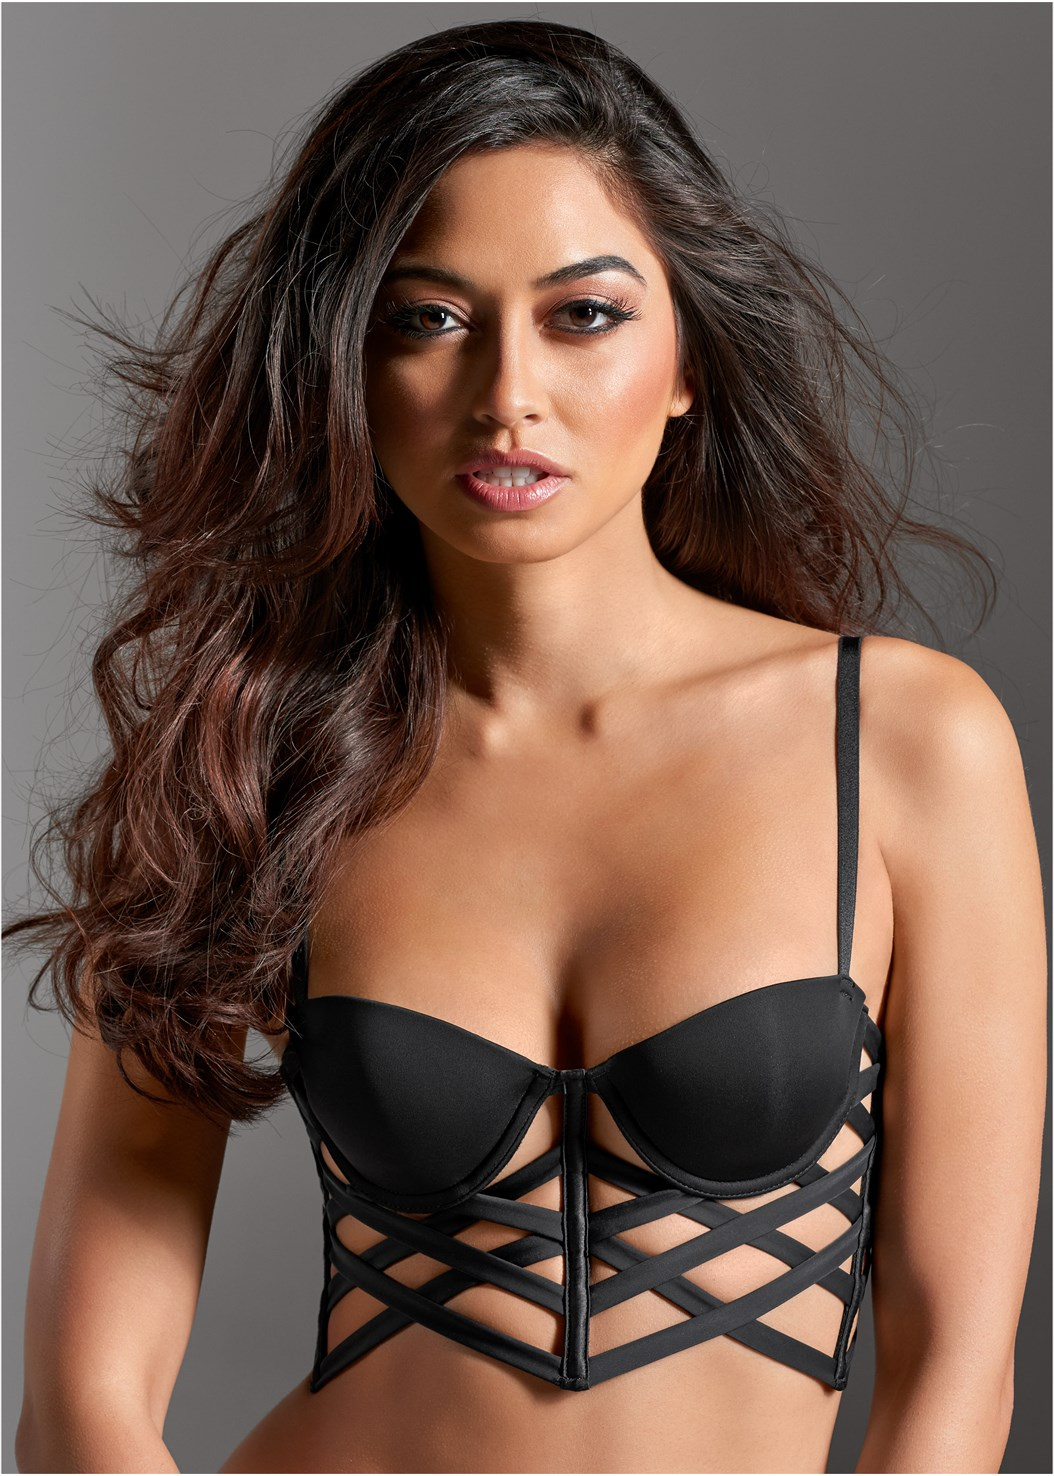 Cage Balconette Bra,Bum Lifter Jeans,High Heel Strappy Sandals